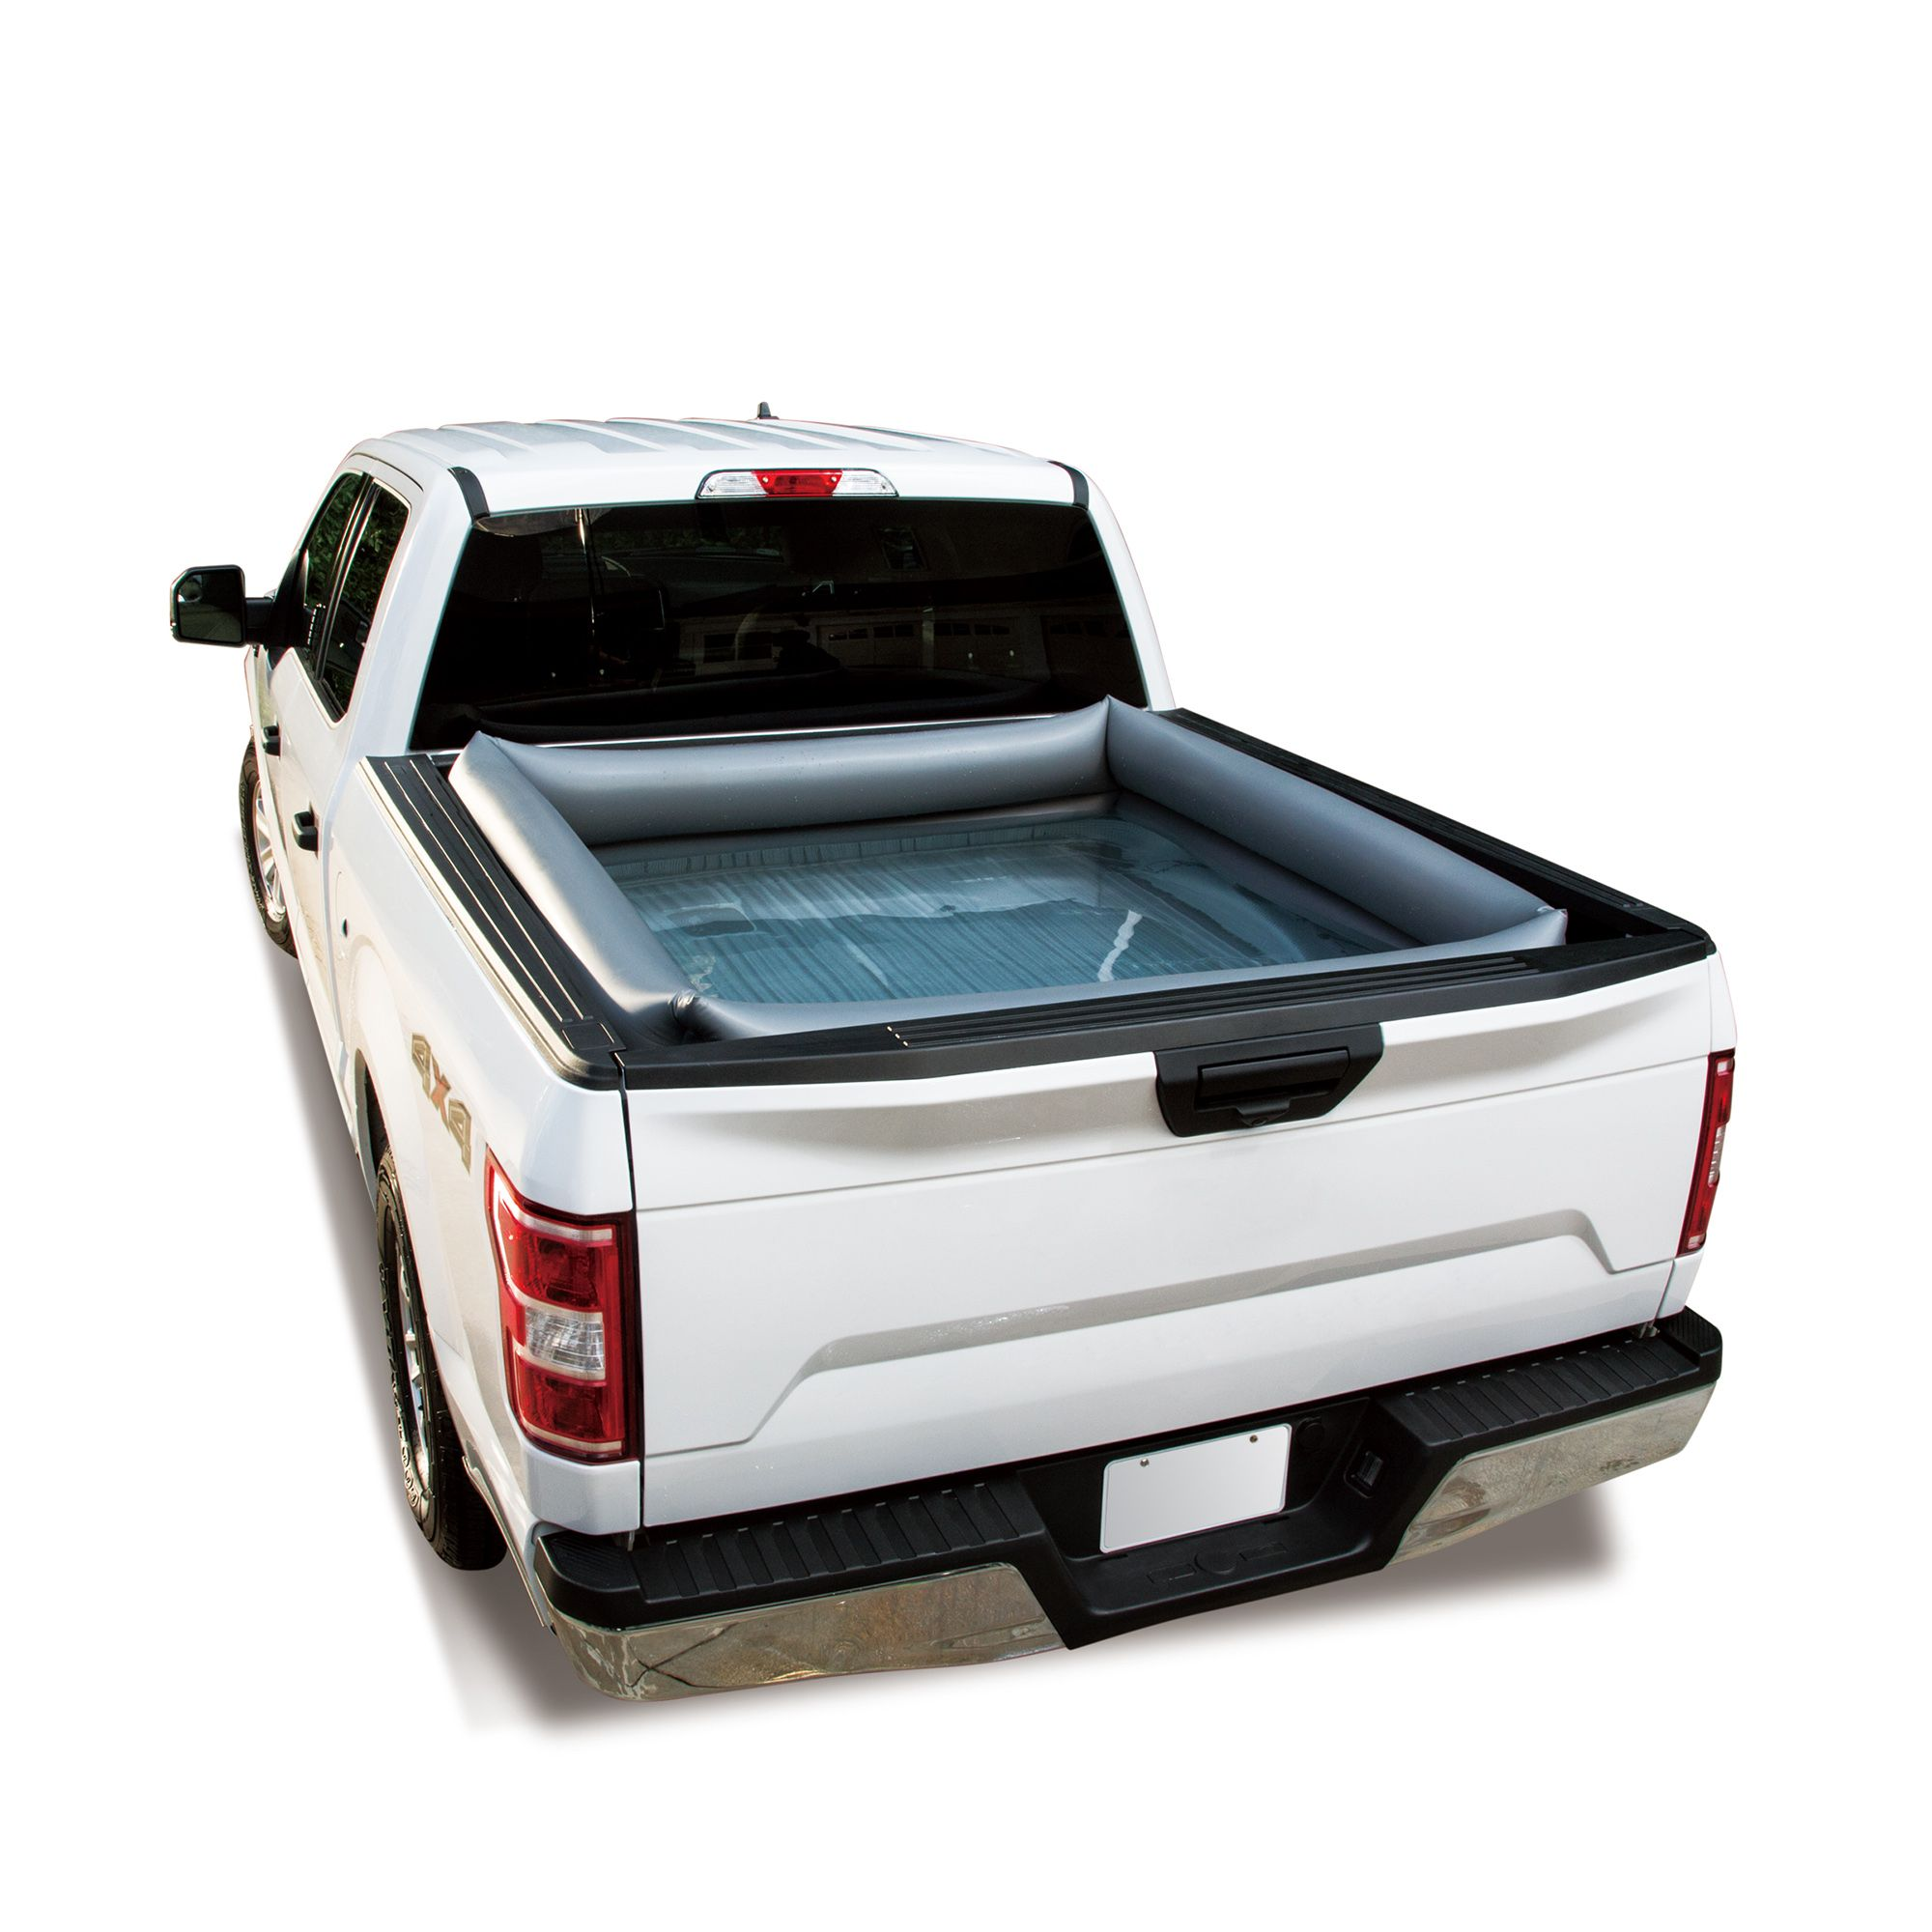 Summer Waves Inflatable Truck Bed Pool Walmart Com Truck Bed Truck Bed Tent Portable Pools